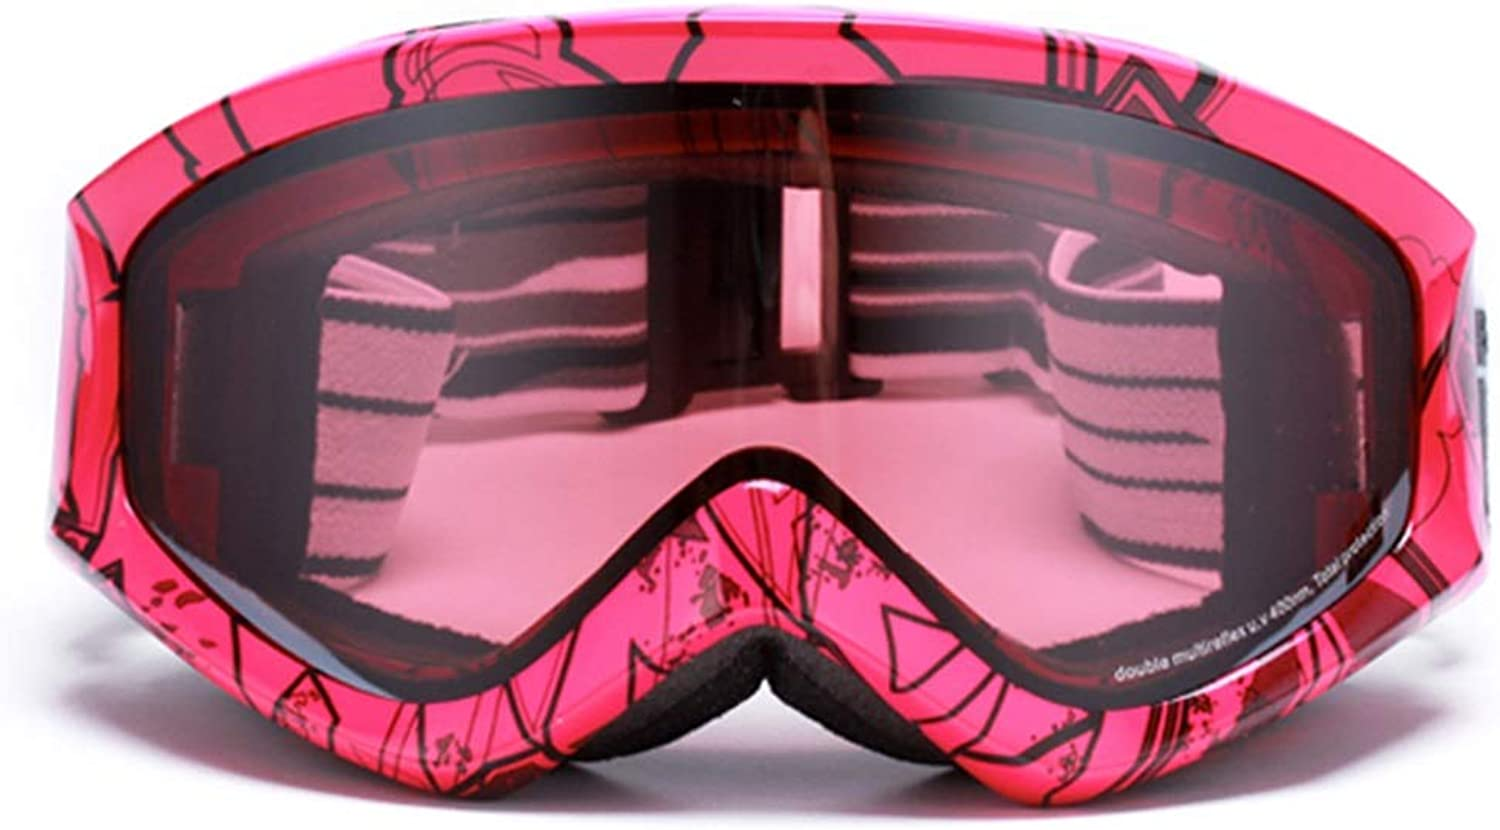 Ski goggles Ski gogglesTPU, PC, can be brought into myopia glasses, double-layer large spherical surface, widened mirror strap, adult universal ski and wind vision wide coated glasses (4 colors ava